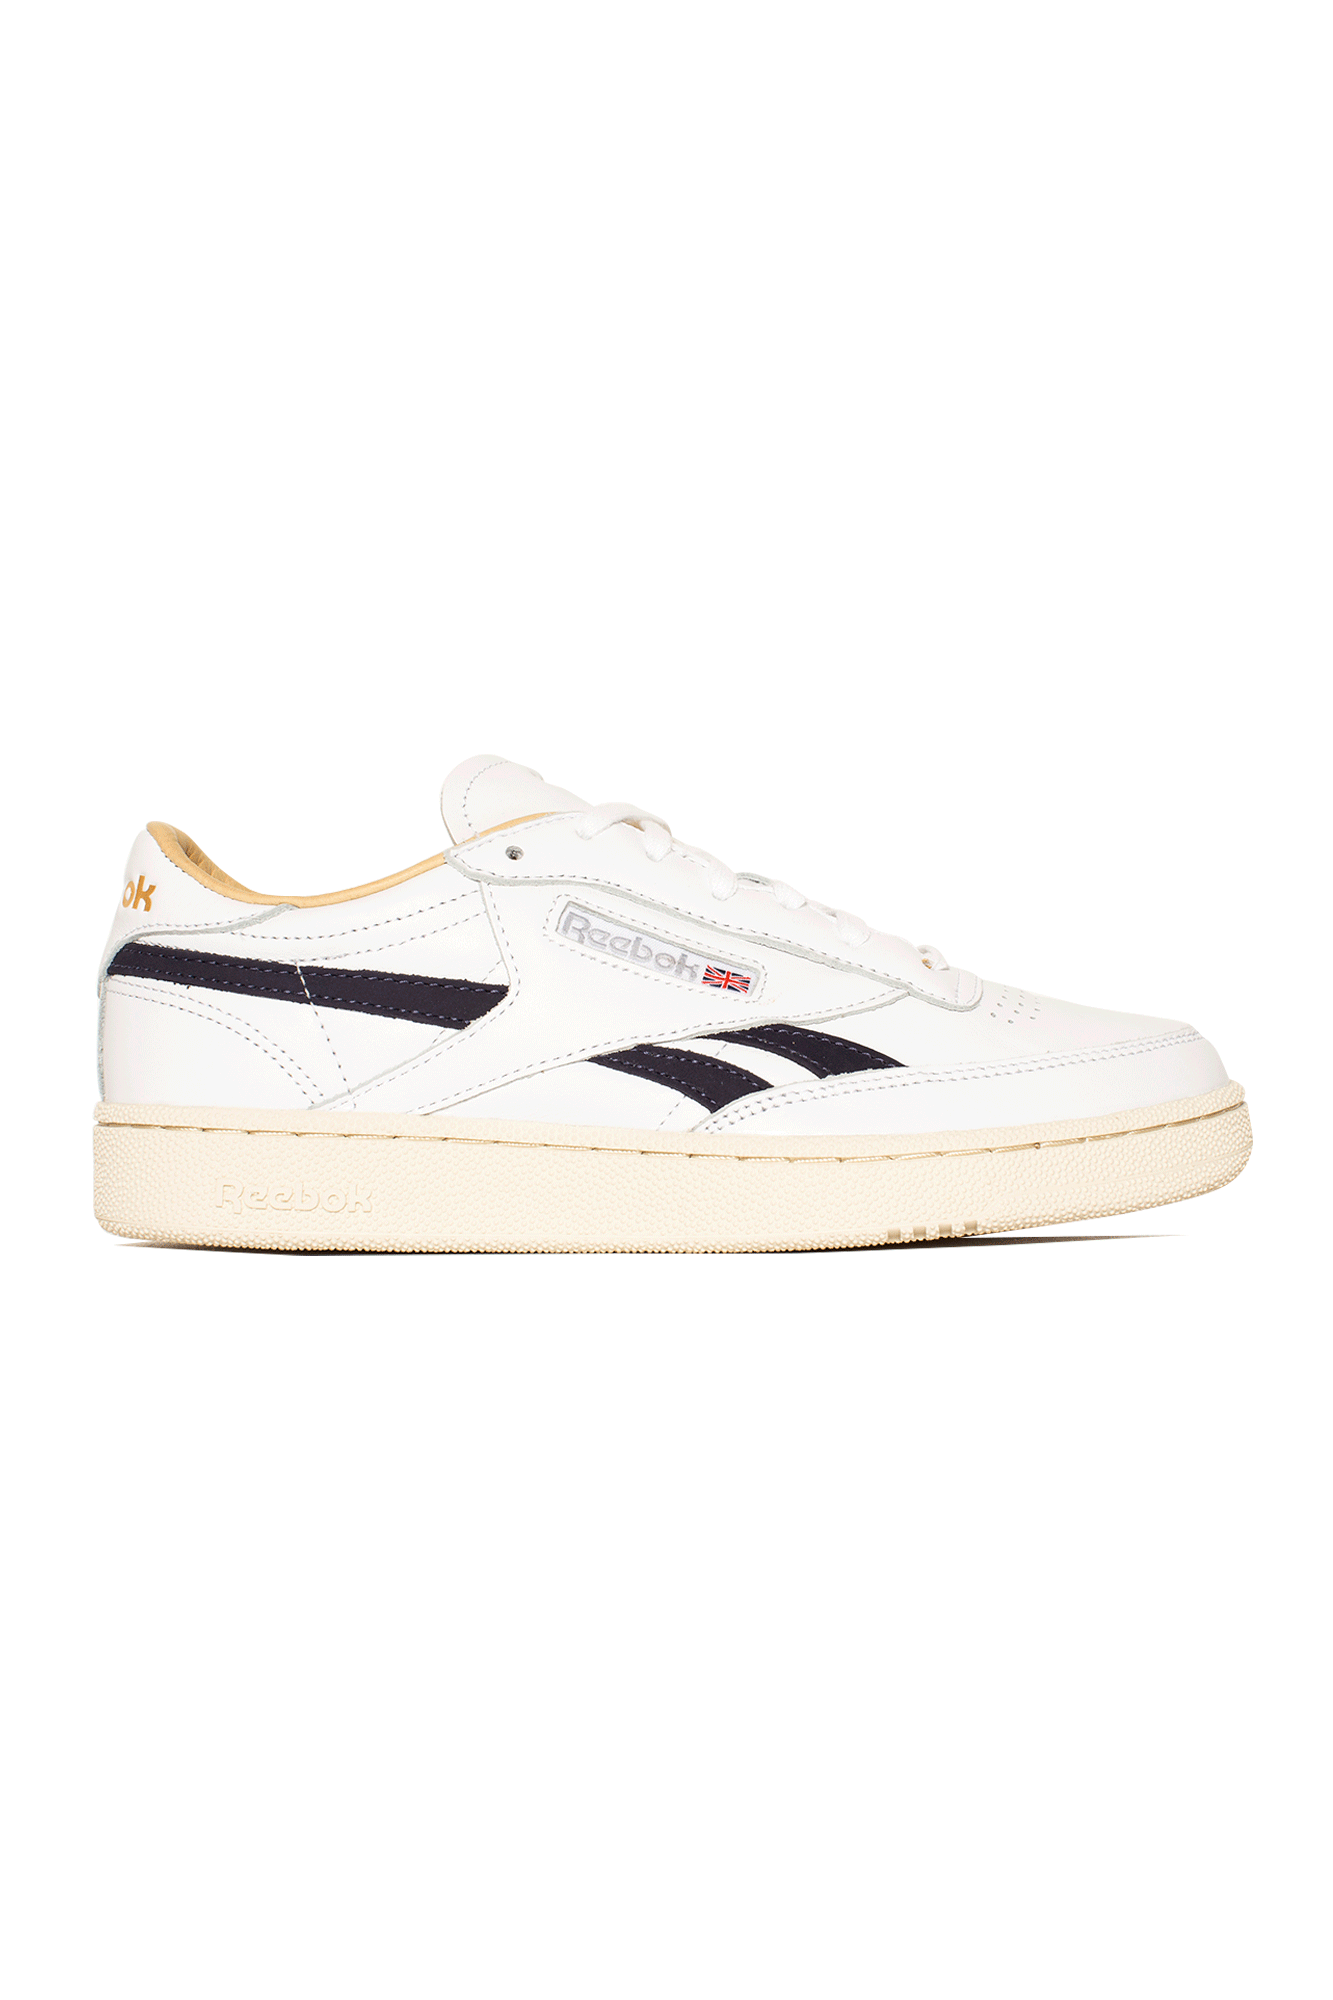 Reebok Sneakers Club C Revenge Mu White EG6430#000#WHITE#8,5 - One Block Down